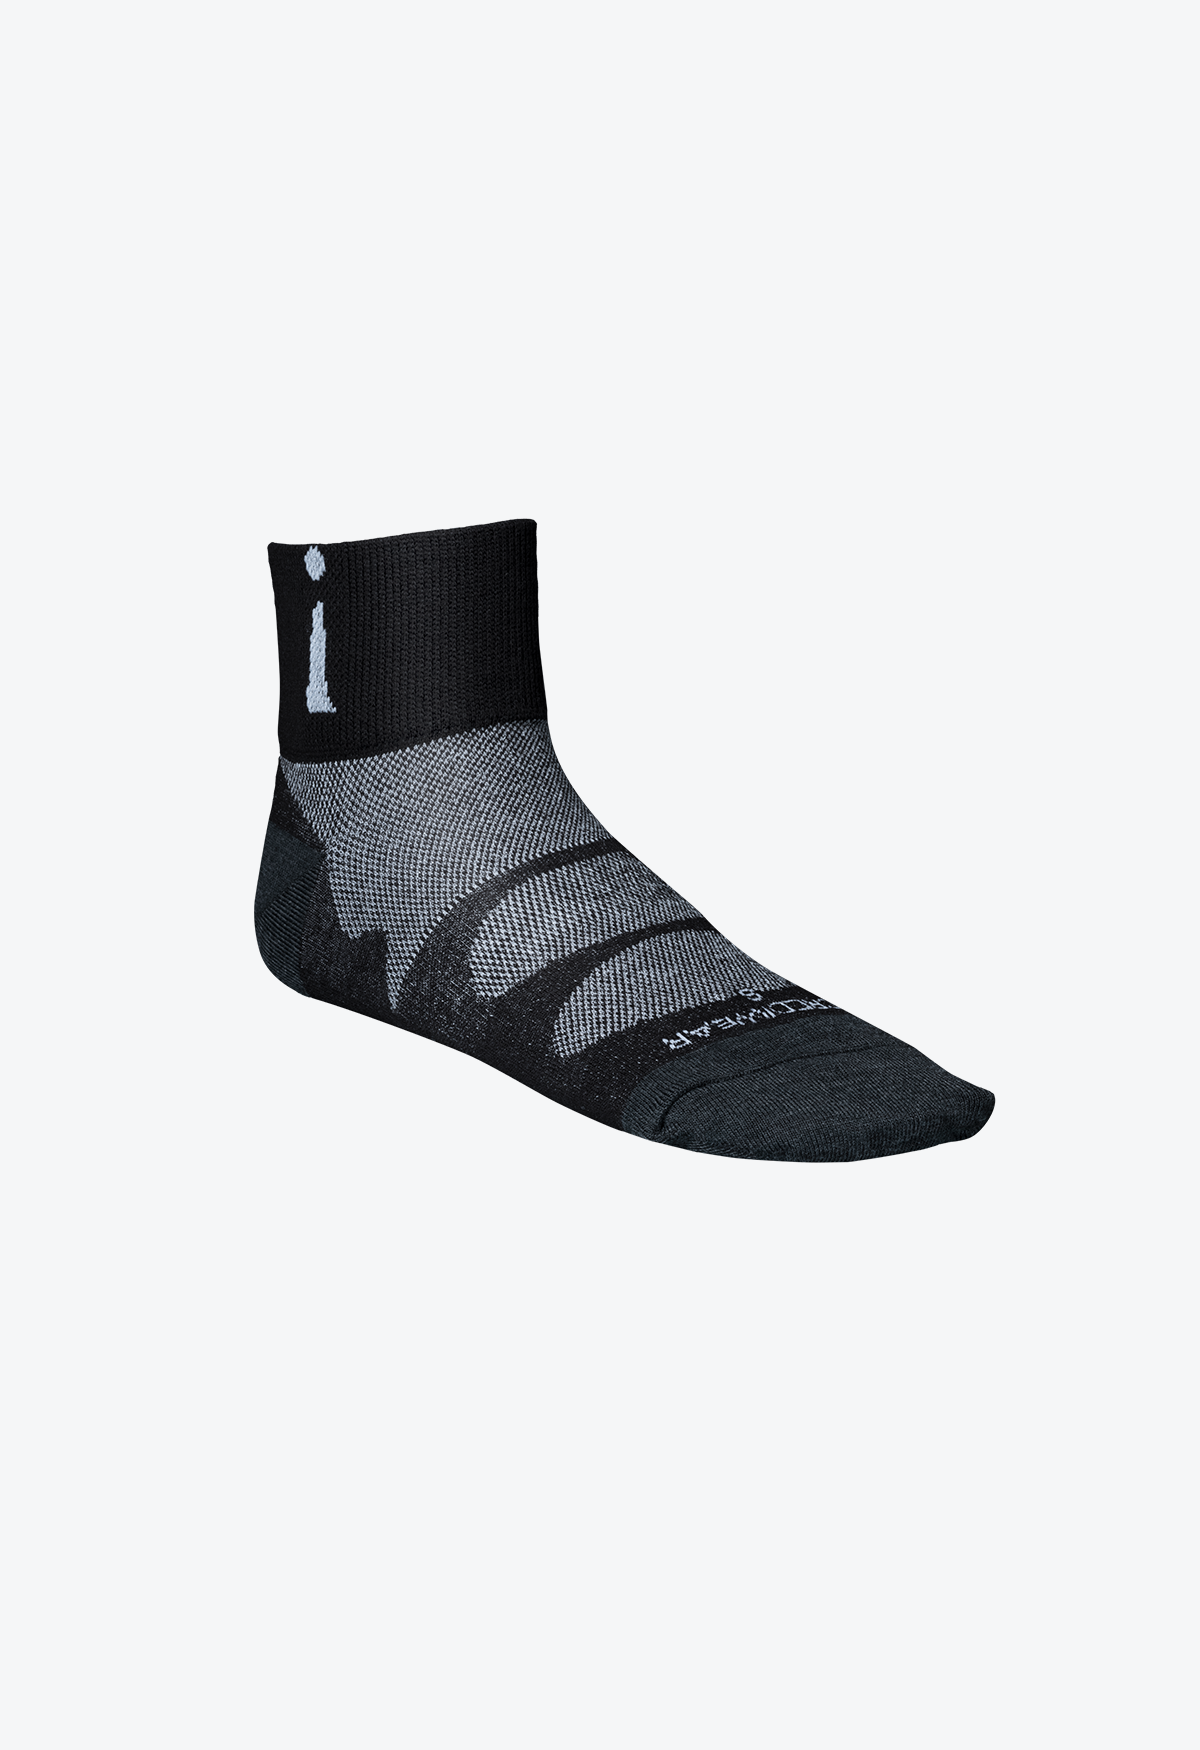 Incrediwear Sports Socks Thin